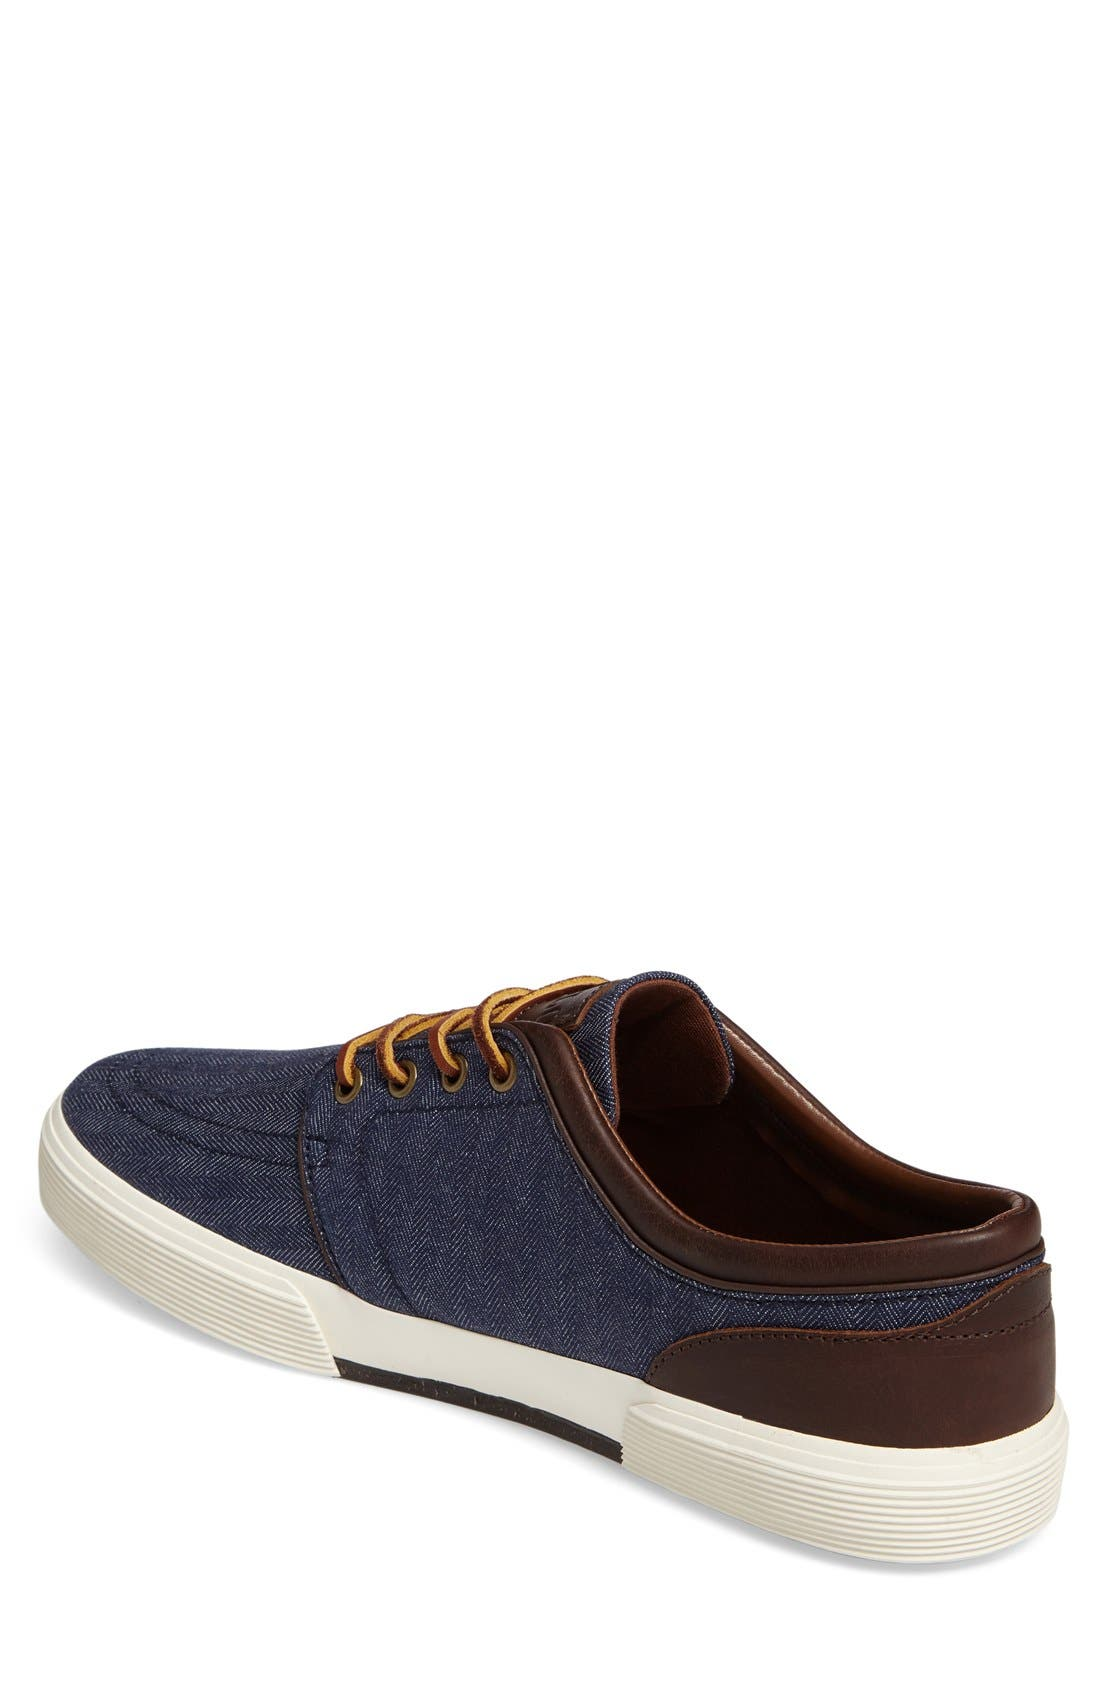 Alternate Image 2  - Polo Ralph Lauren 'Faxon Low' Sneaker (Men)